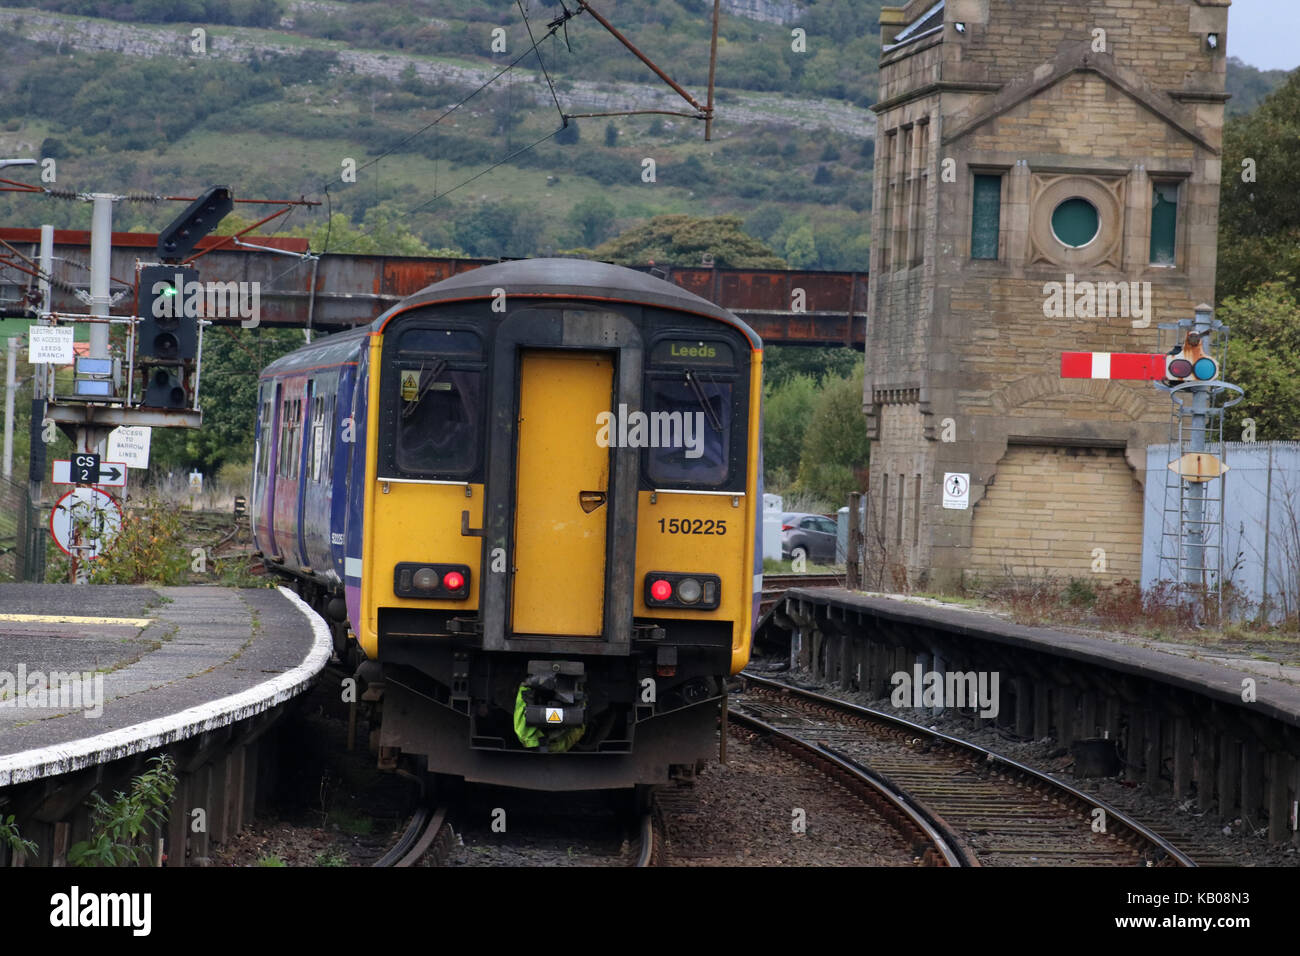 Class 150 Sprinter diesel multiple unit train in Northern livery leaving Carnforth railway station with a passenger - Stock Image